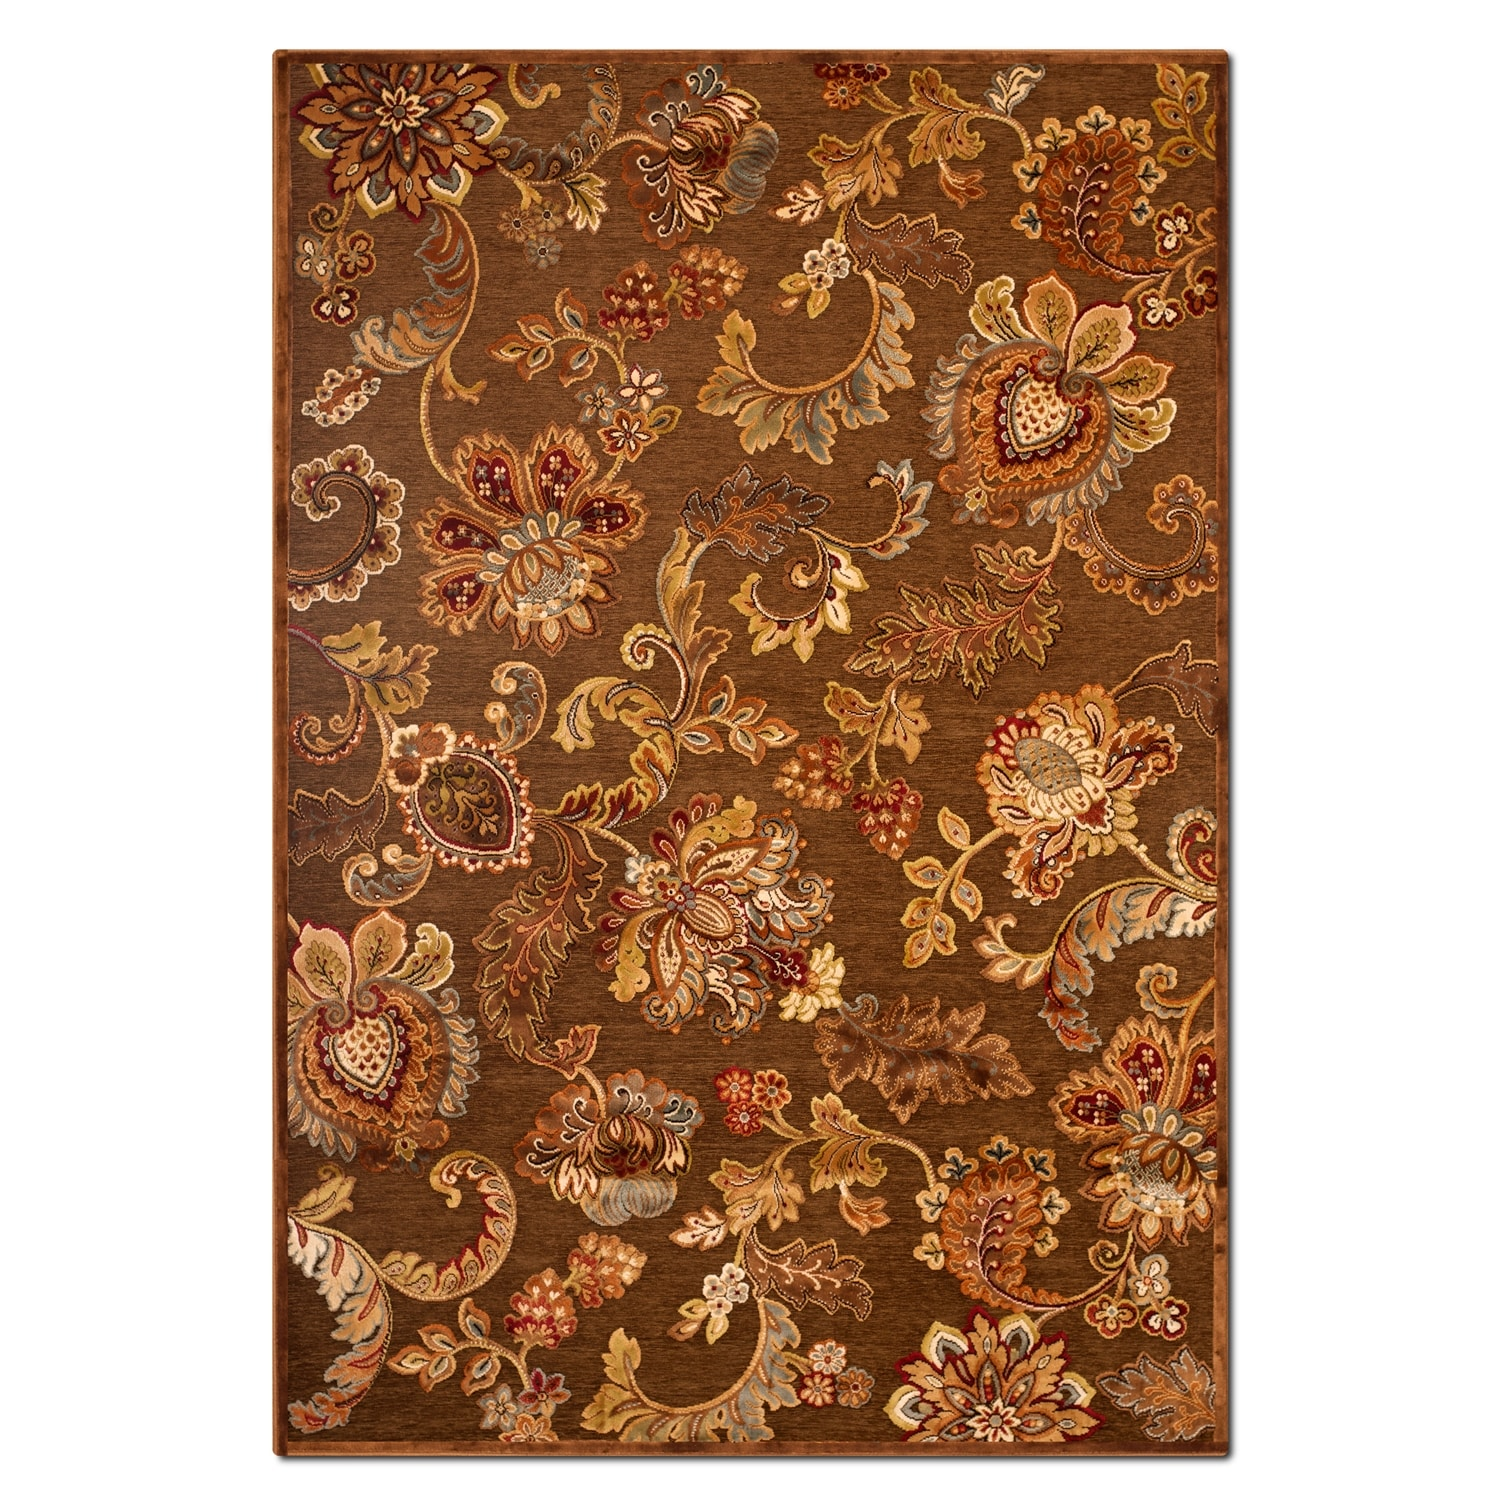 Rugs - Napa Meadow Area Rug (5' x 8')